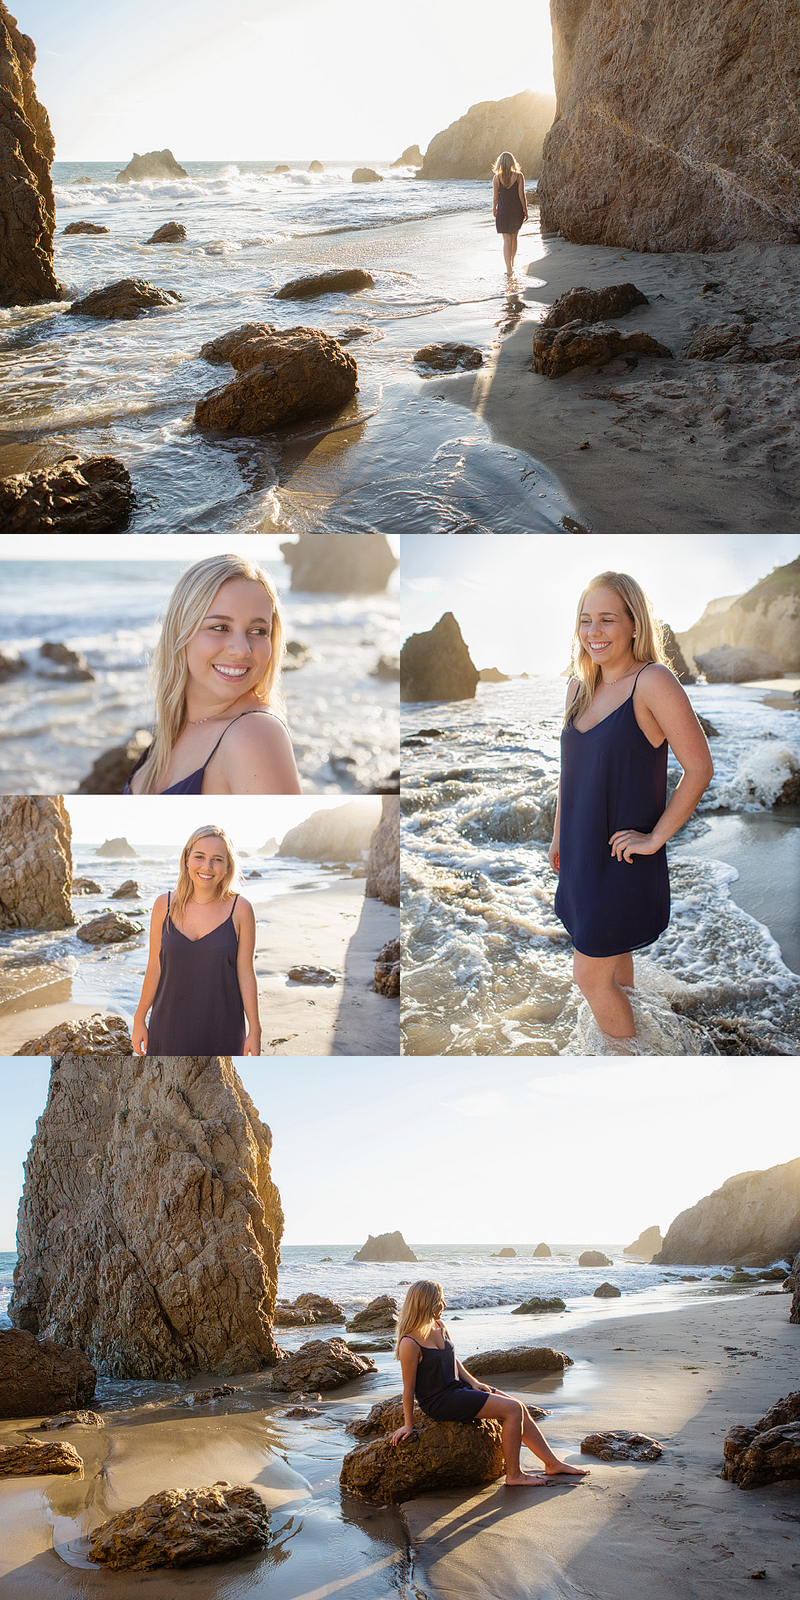 Thousand Oaks High school senior portraits